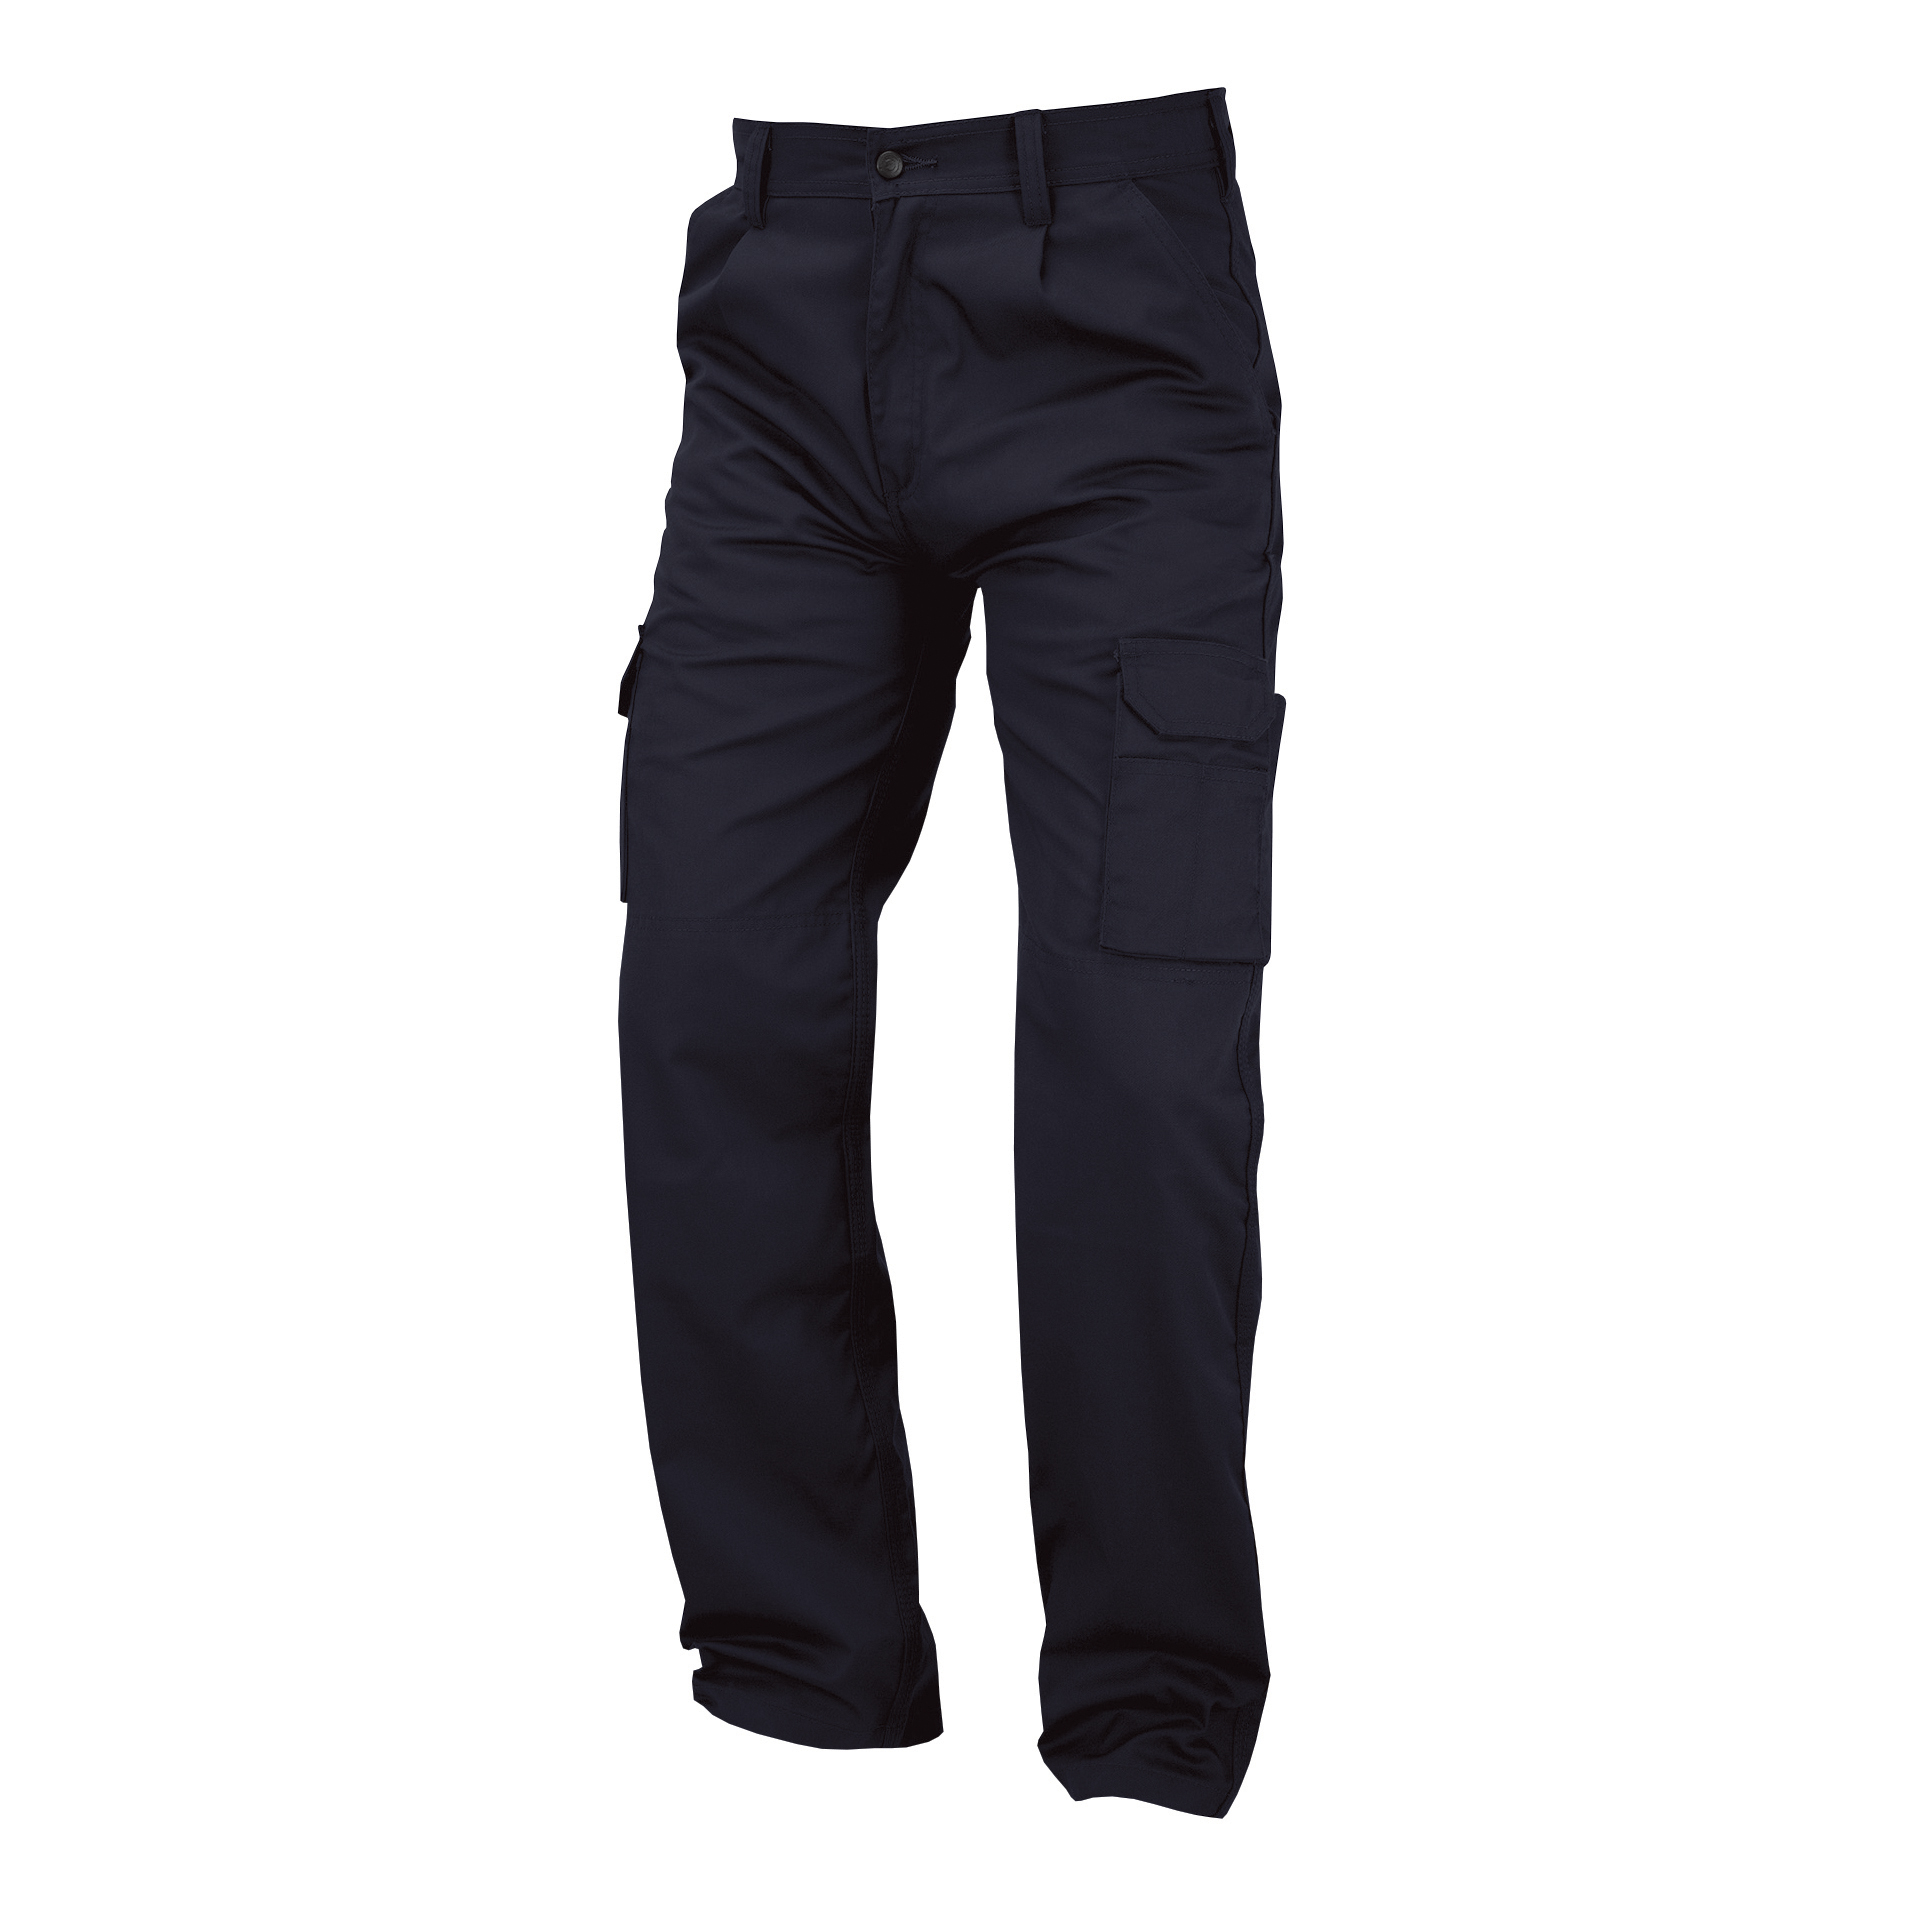 Combat Trouser Multi-functional Waist 46in Leg 29in Navy Ref PCTHWN46S *Approx 3 Day Leadtime*